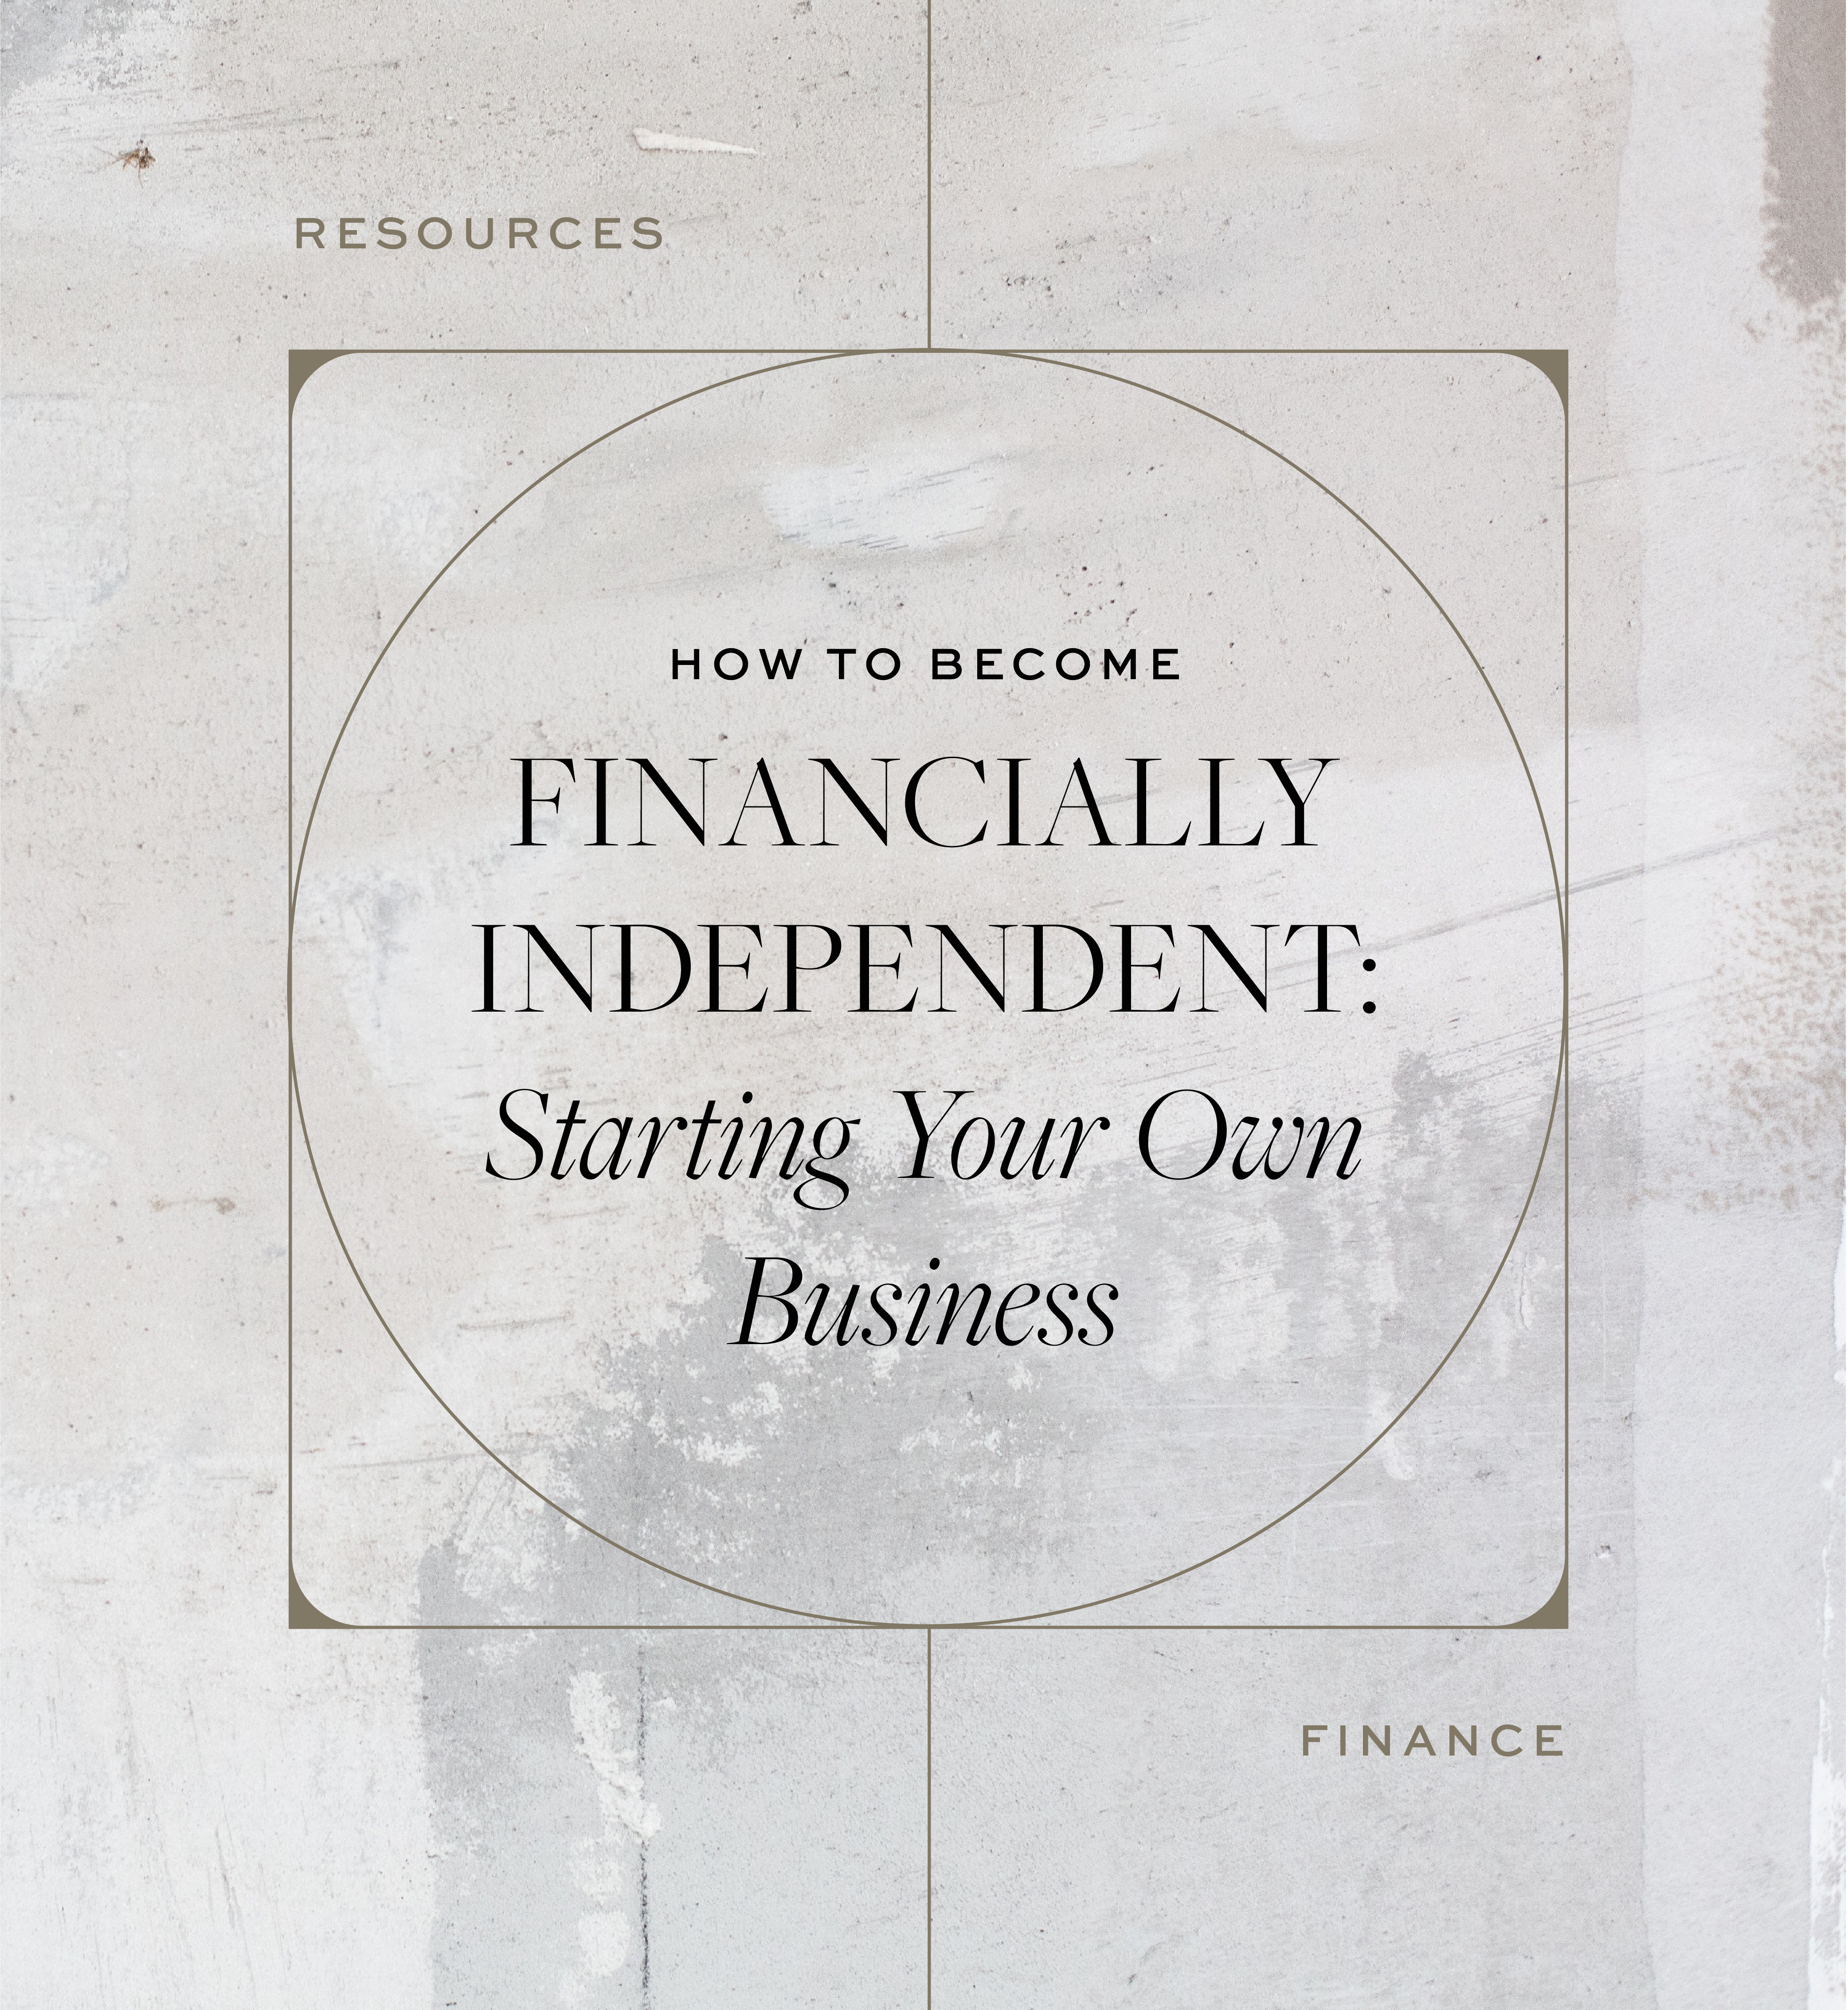 How to become financially independent: starting your own business.